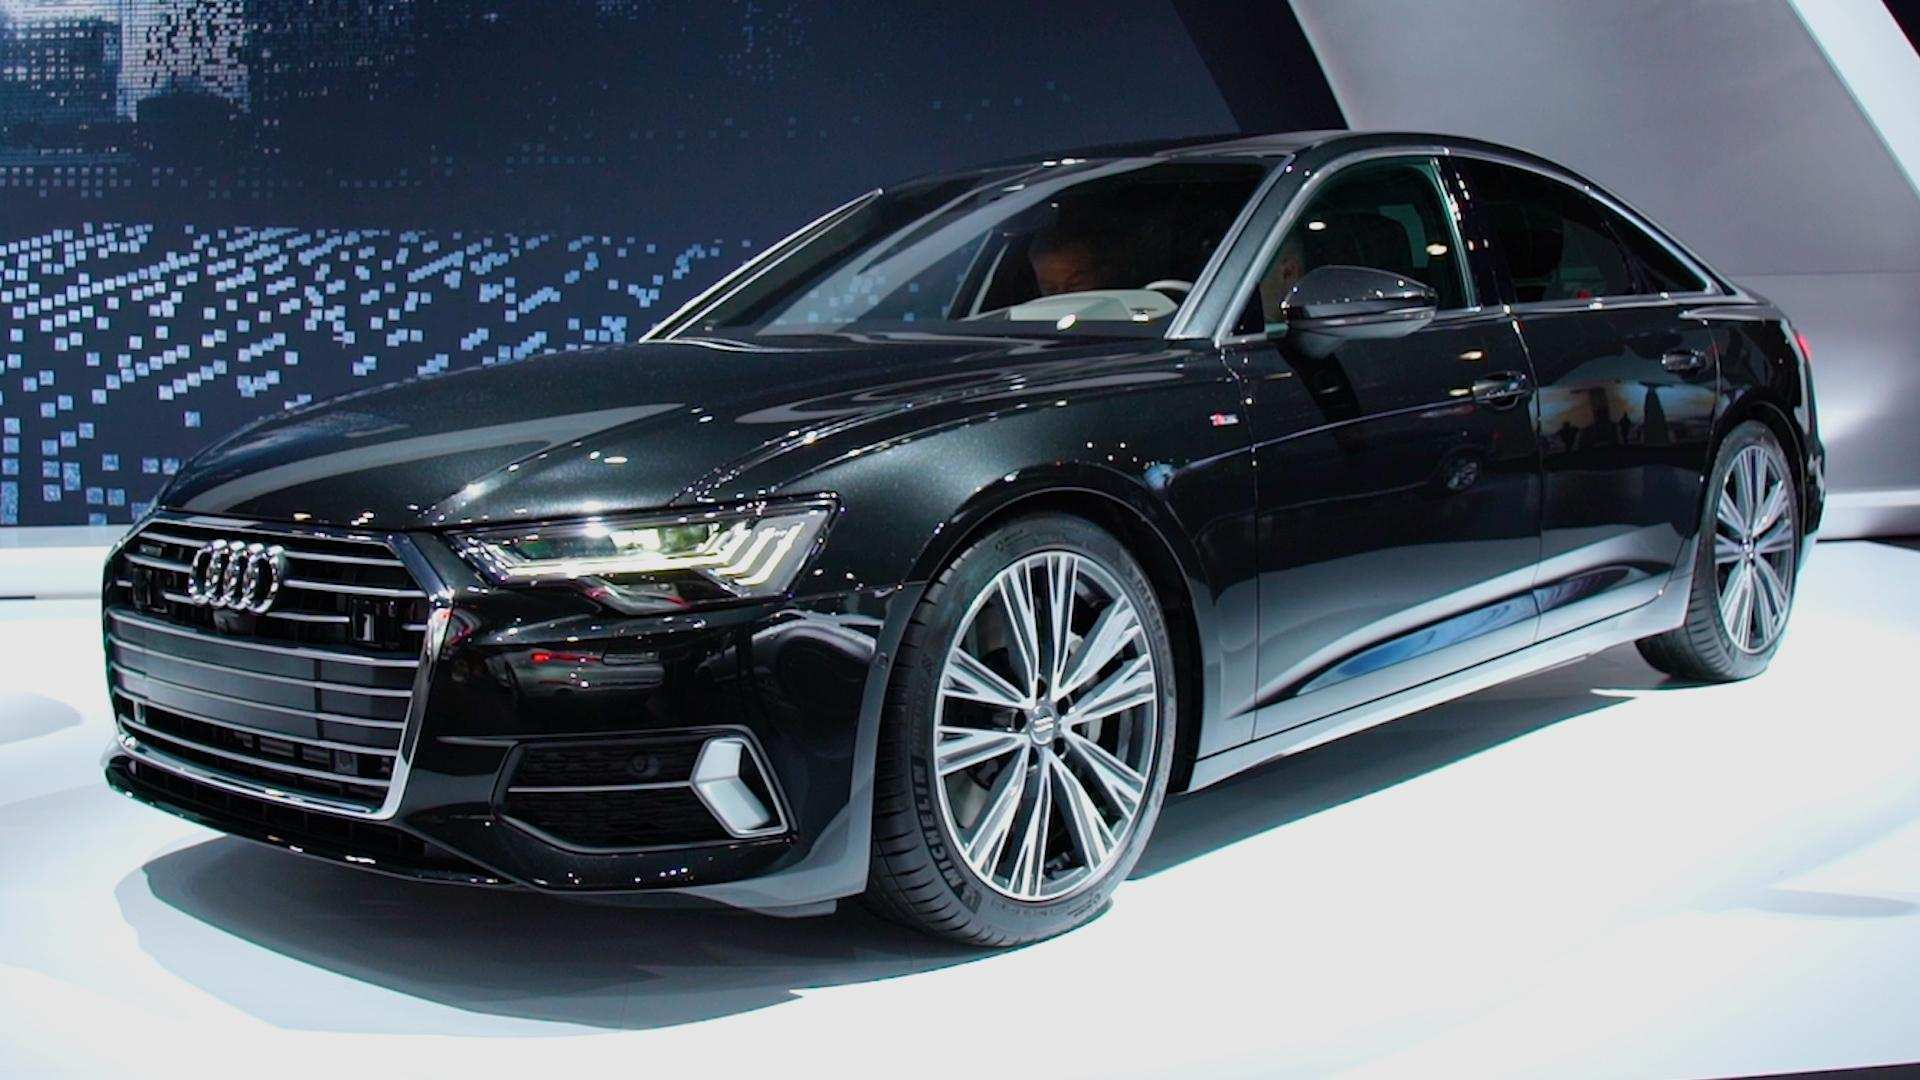 43 Gallery of Audi A6 2019 Prices with Audi A6 2019